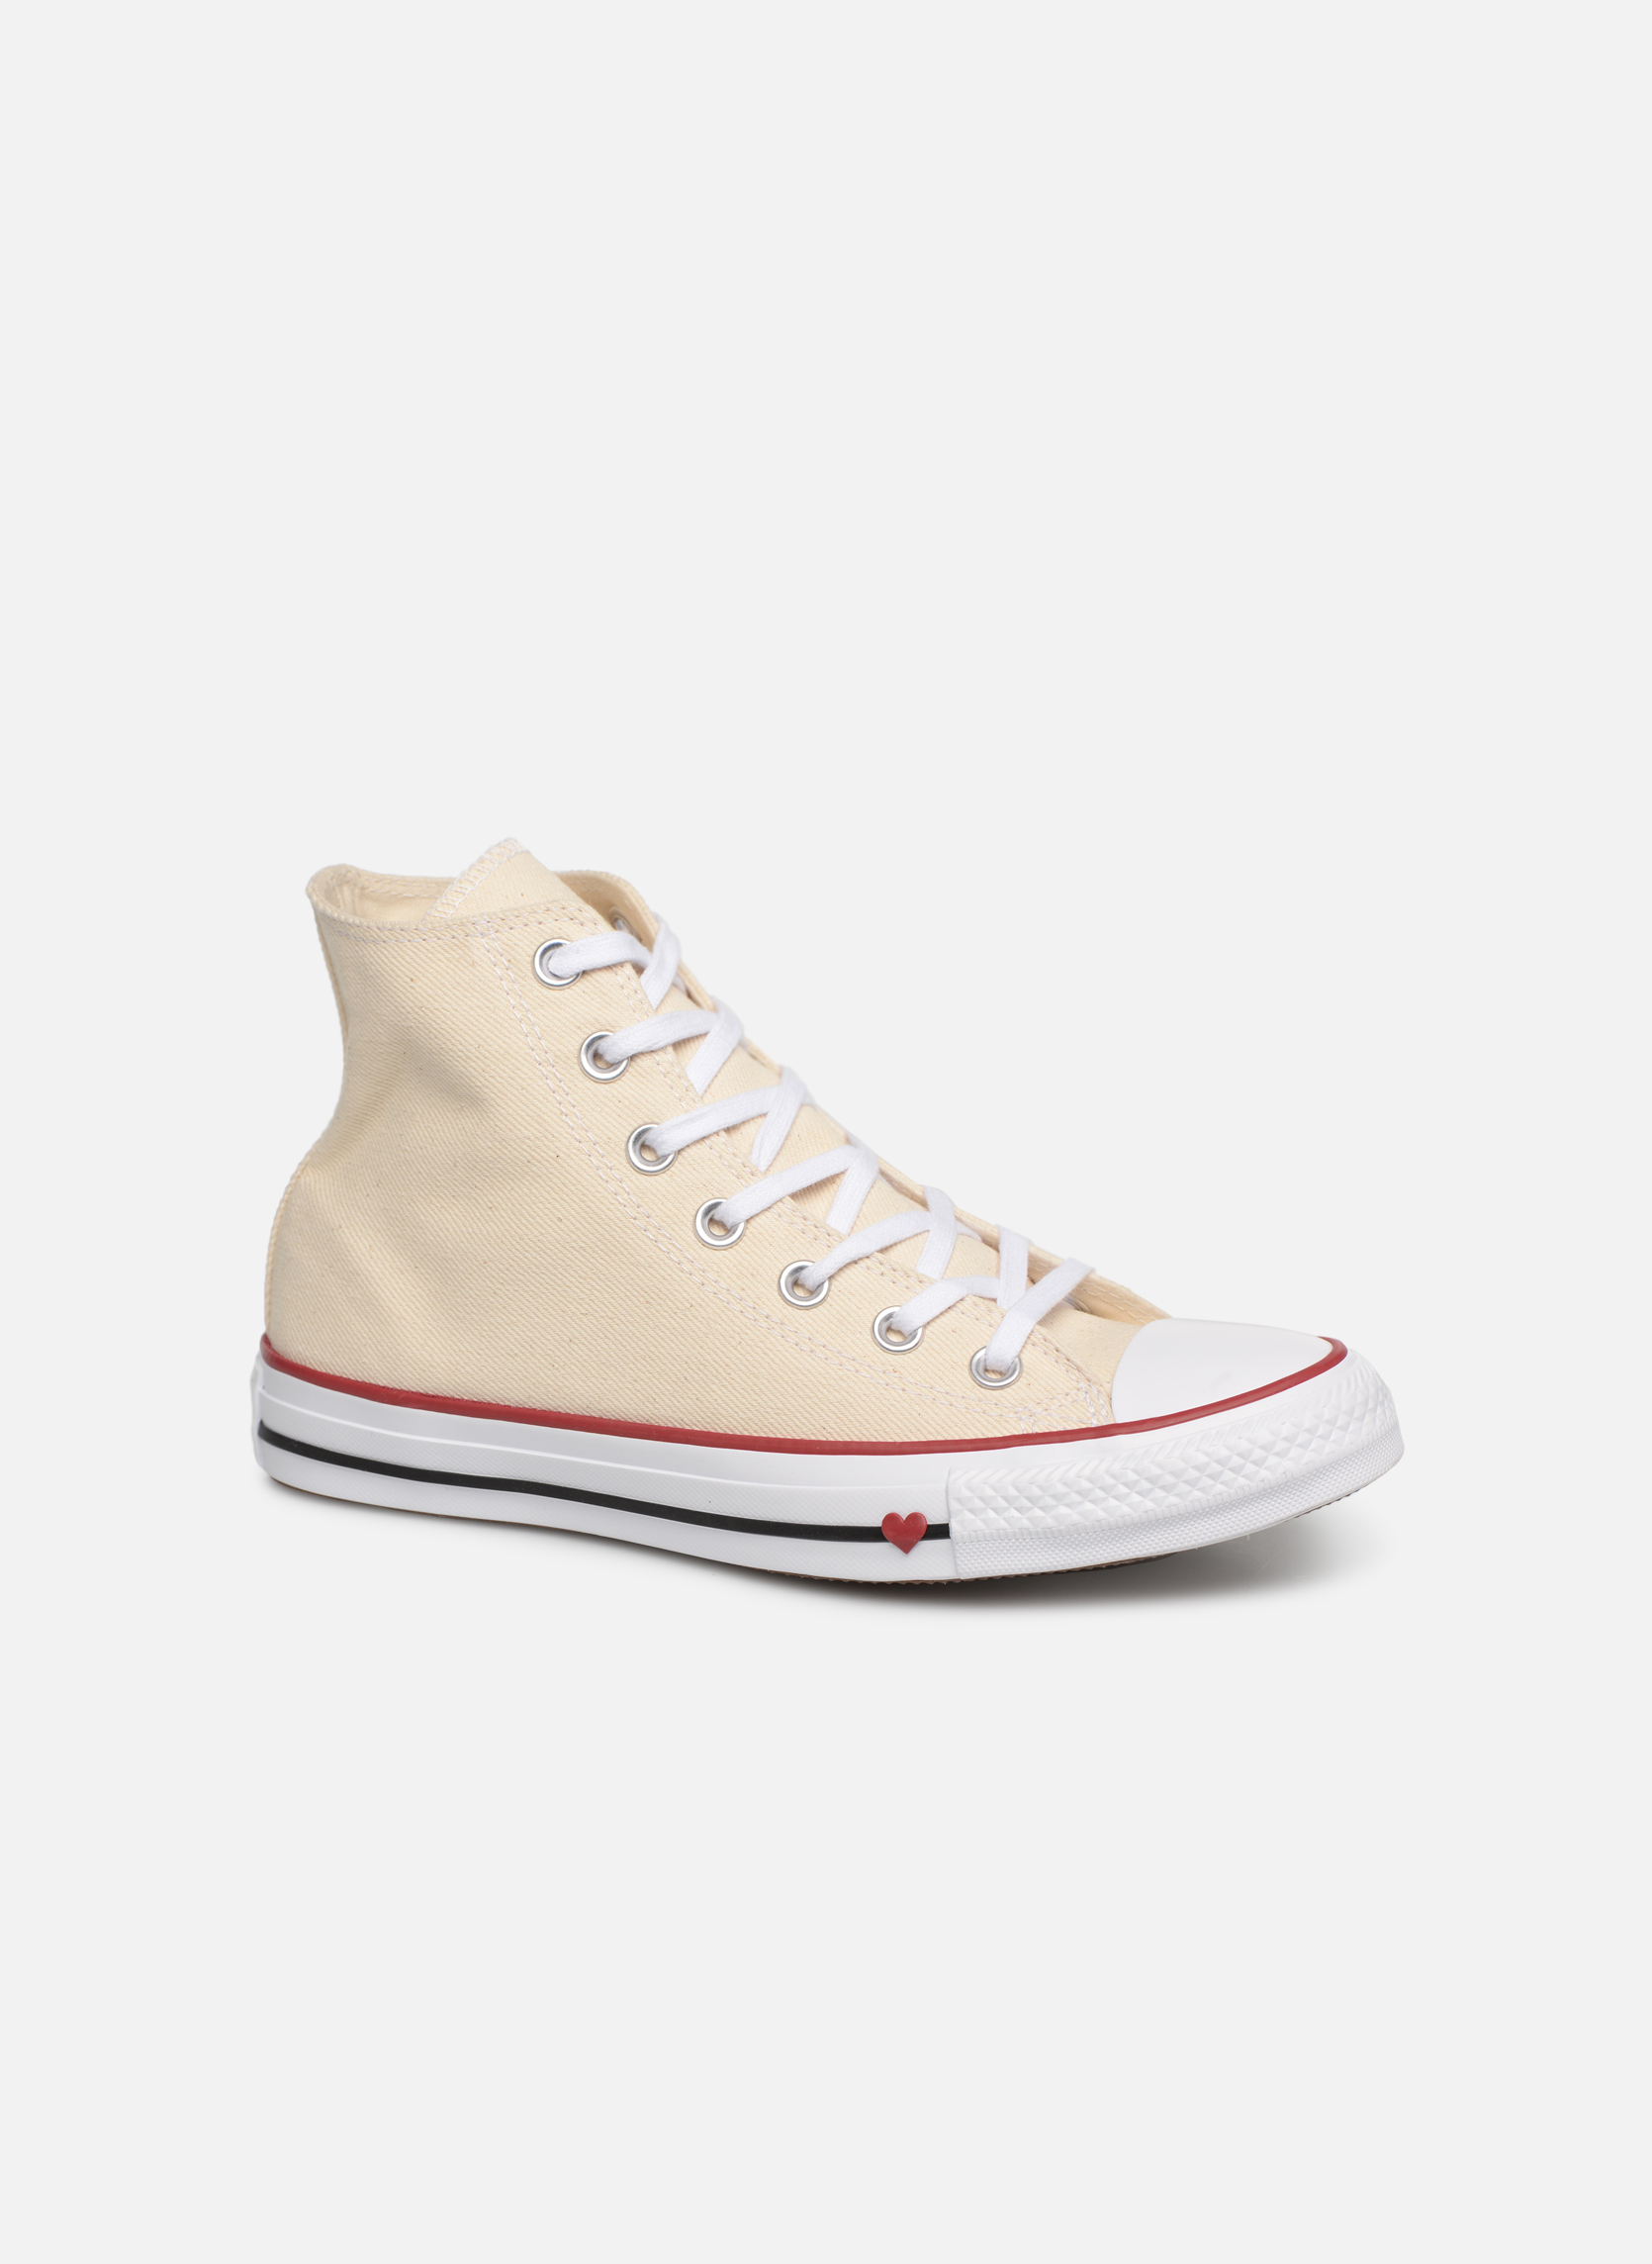 Sneakers Chuck Taylor All Star Sucker for Love Hi by ConverseConverseBeigePaar schoenen - Sneakers88875642980742Textiel